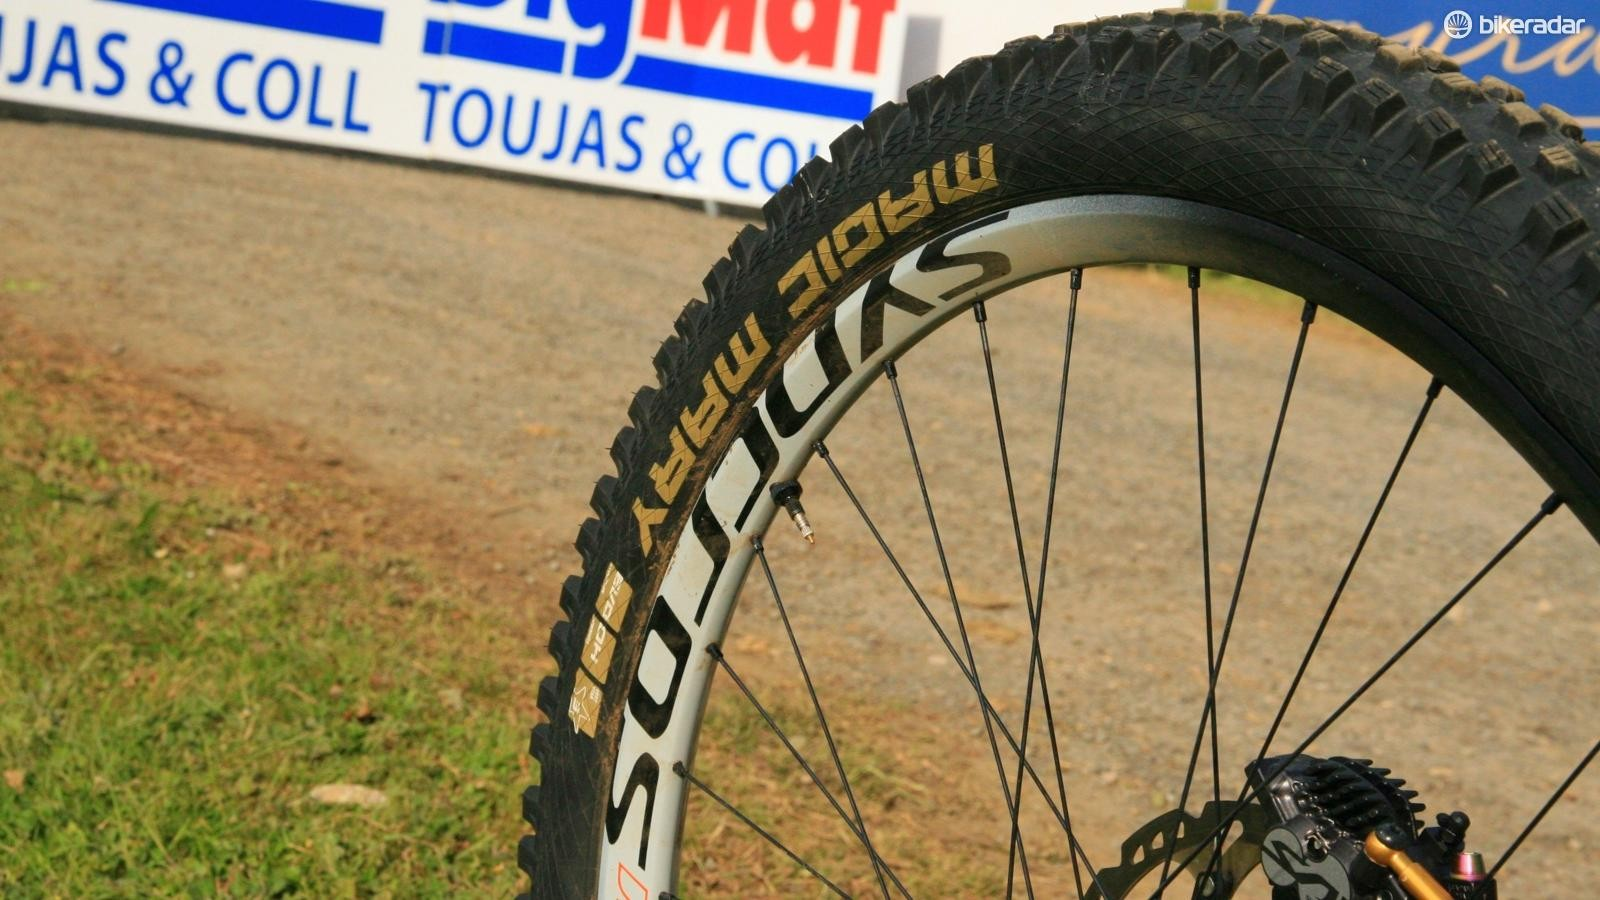 An unusual pairing of 30mm rear and 25mm front rims allows Fairclough to slam the bike hard into turns